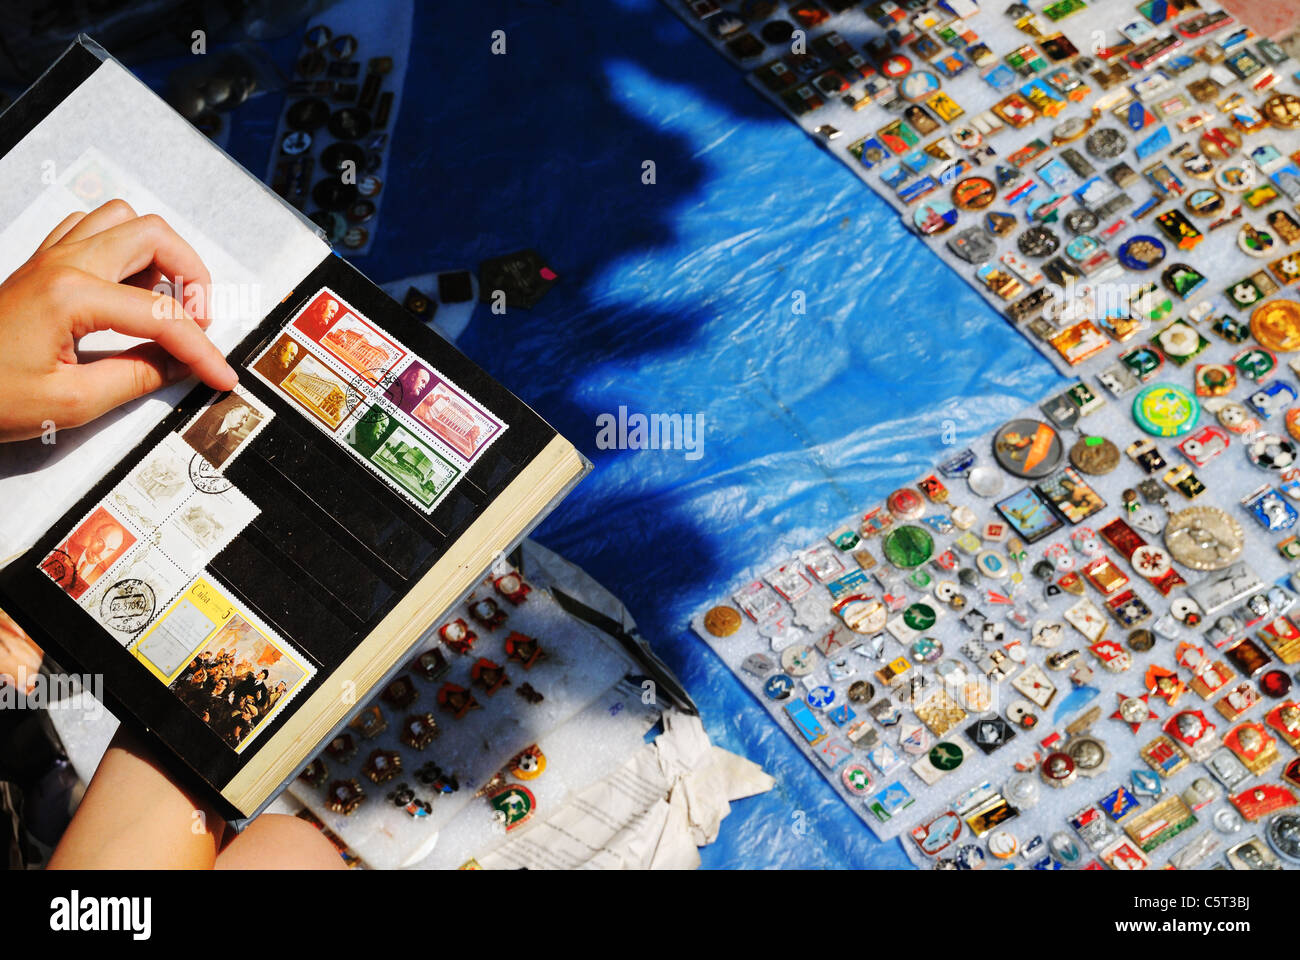 Stamps and badges for sale in street market, Crimea, Ukraine - Stock Image